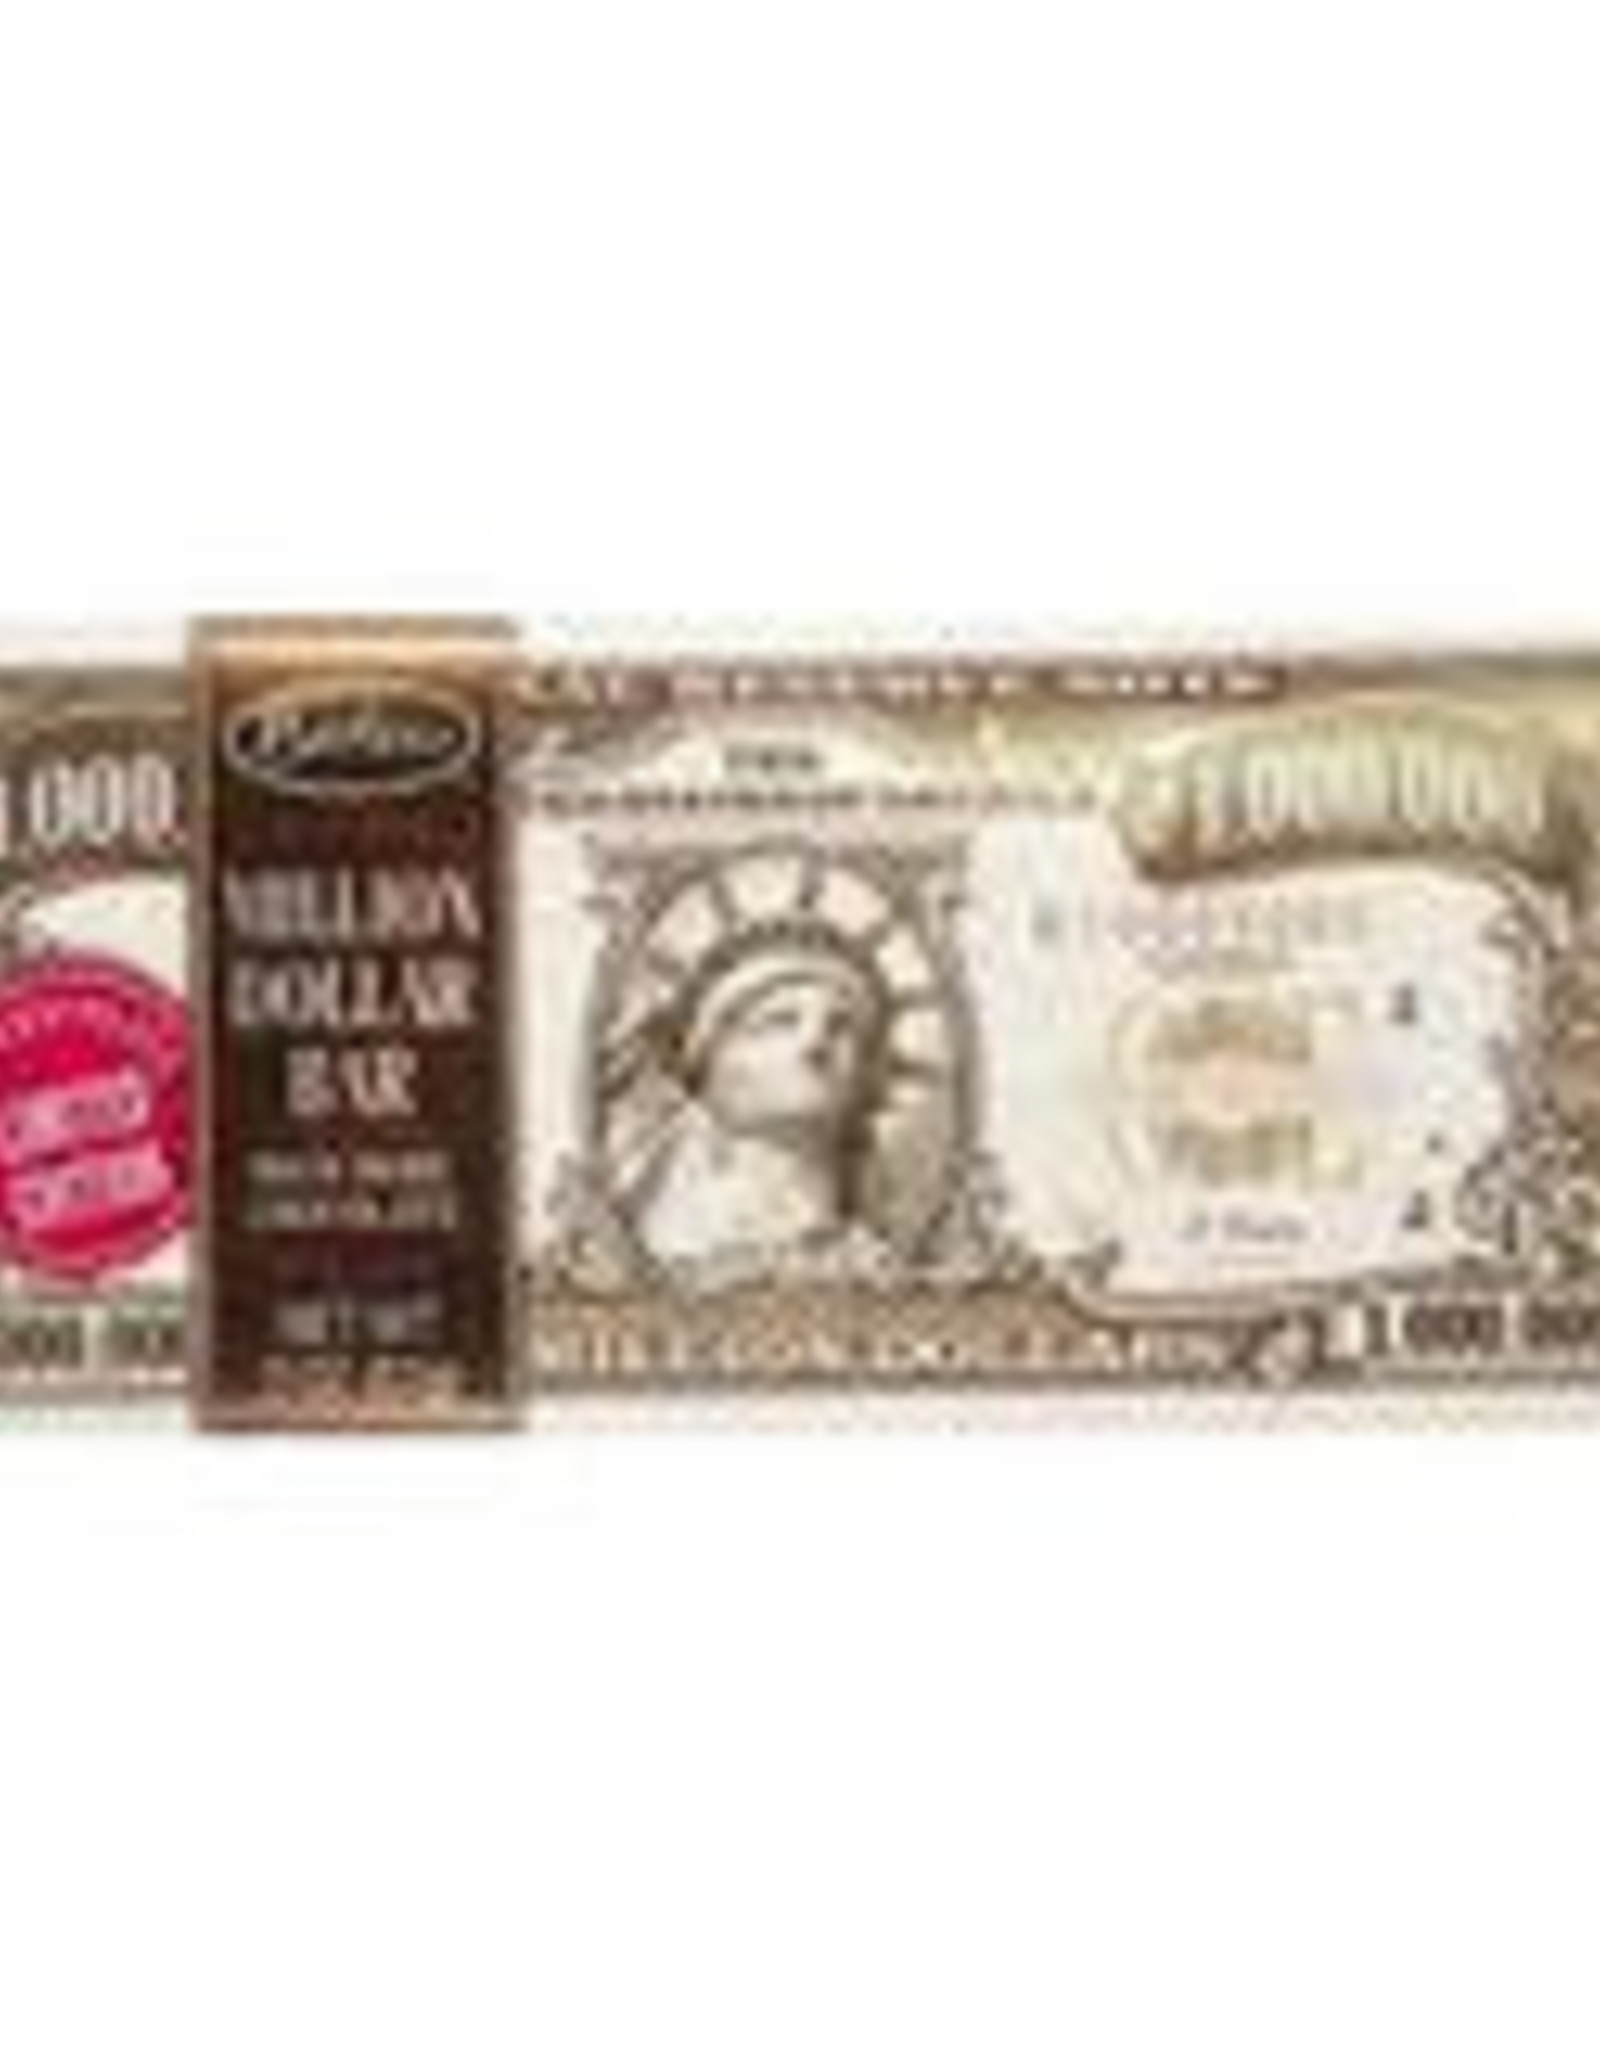 Barton's Million Dollar Dark Chocolate Bar